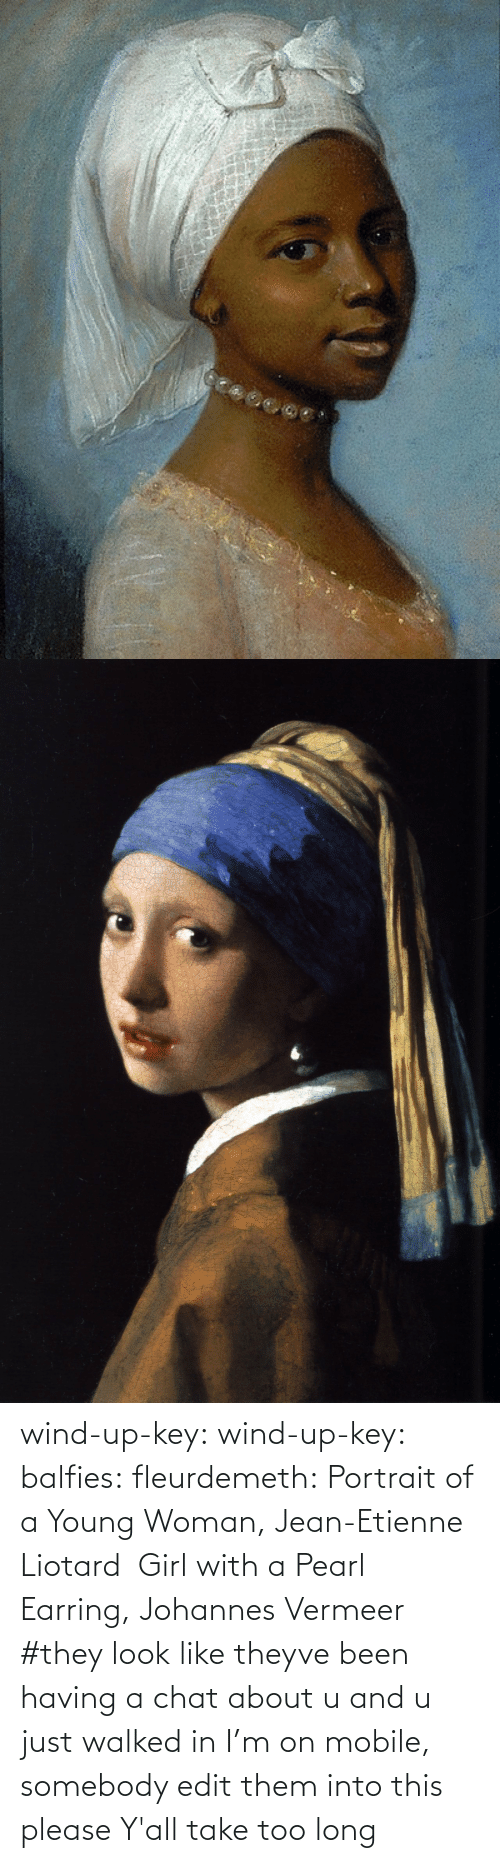 Theyve: wind-up-key: wind-up-key:   balfies:  fleurdemeth:  Portrait of a Young Woman, Jean-Etienne Liotard  Girl with a Pearl Earring, Johannes Vermeer   #they look like theyve been having a chat about u and u just walked in   I'm on mobile, somebody edit them into this please   Y'all take too long